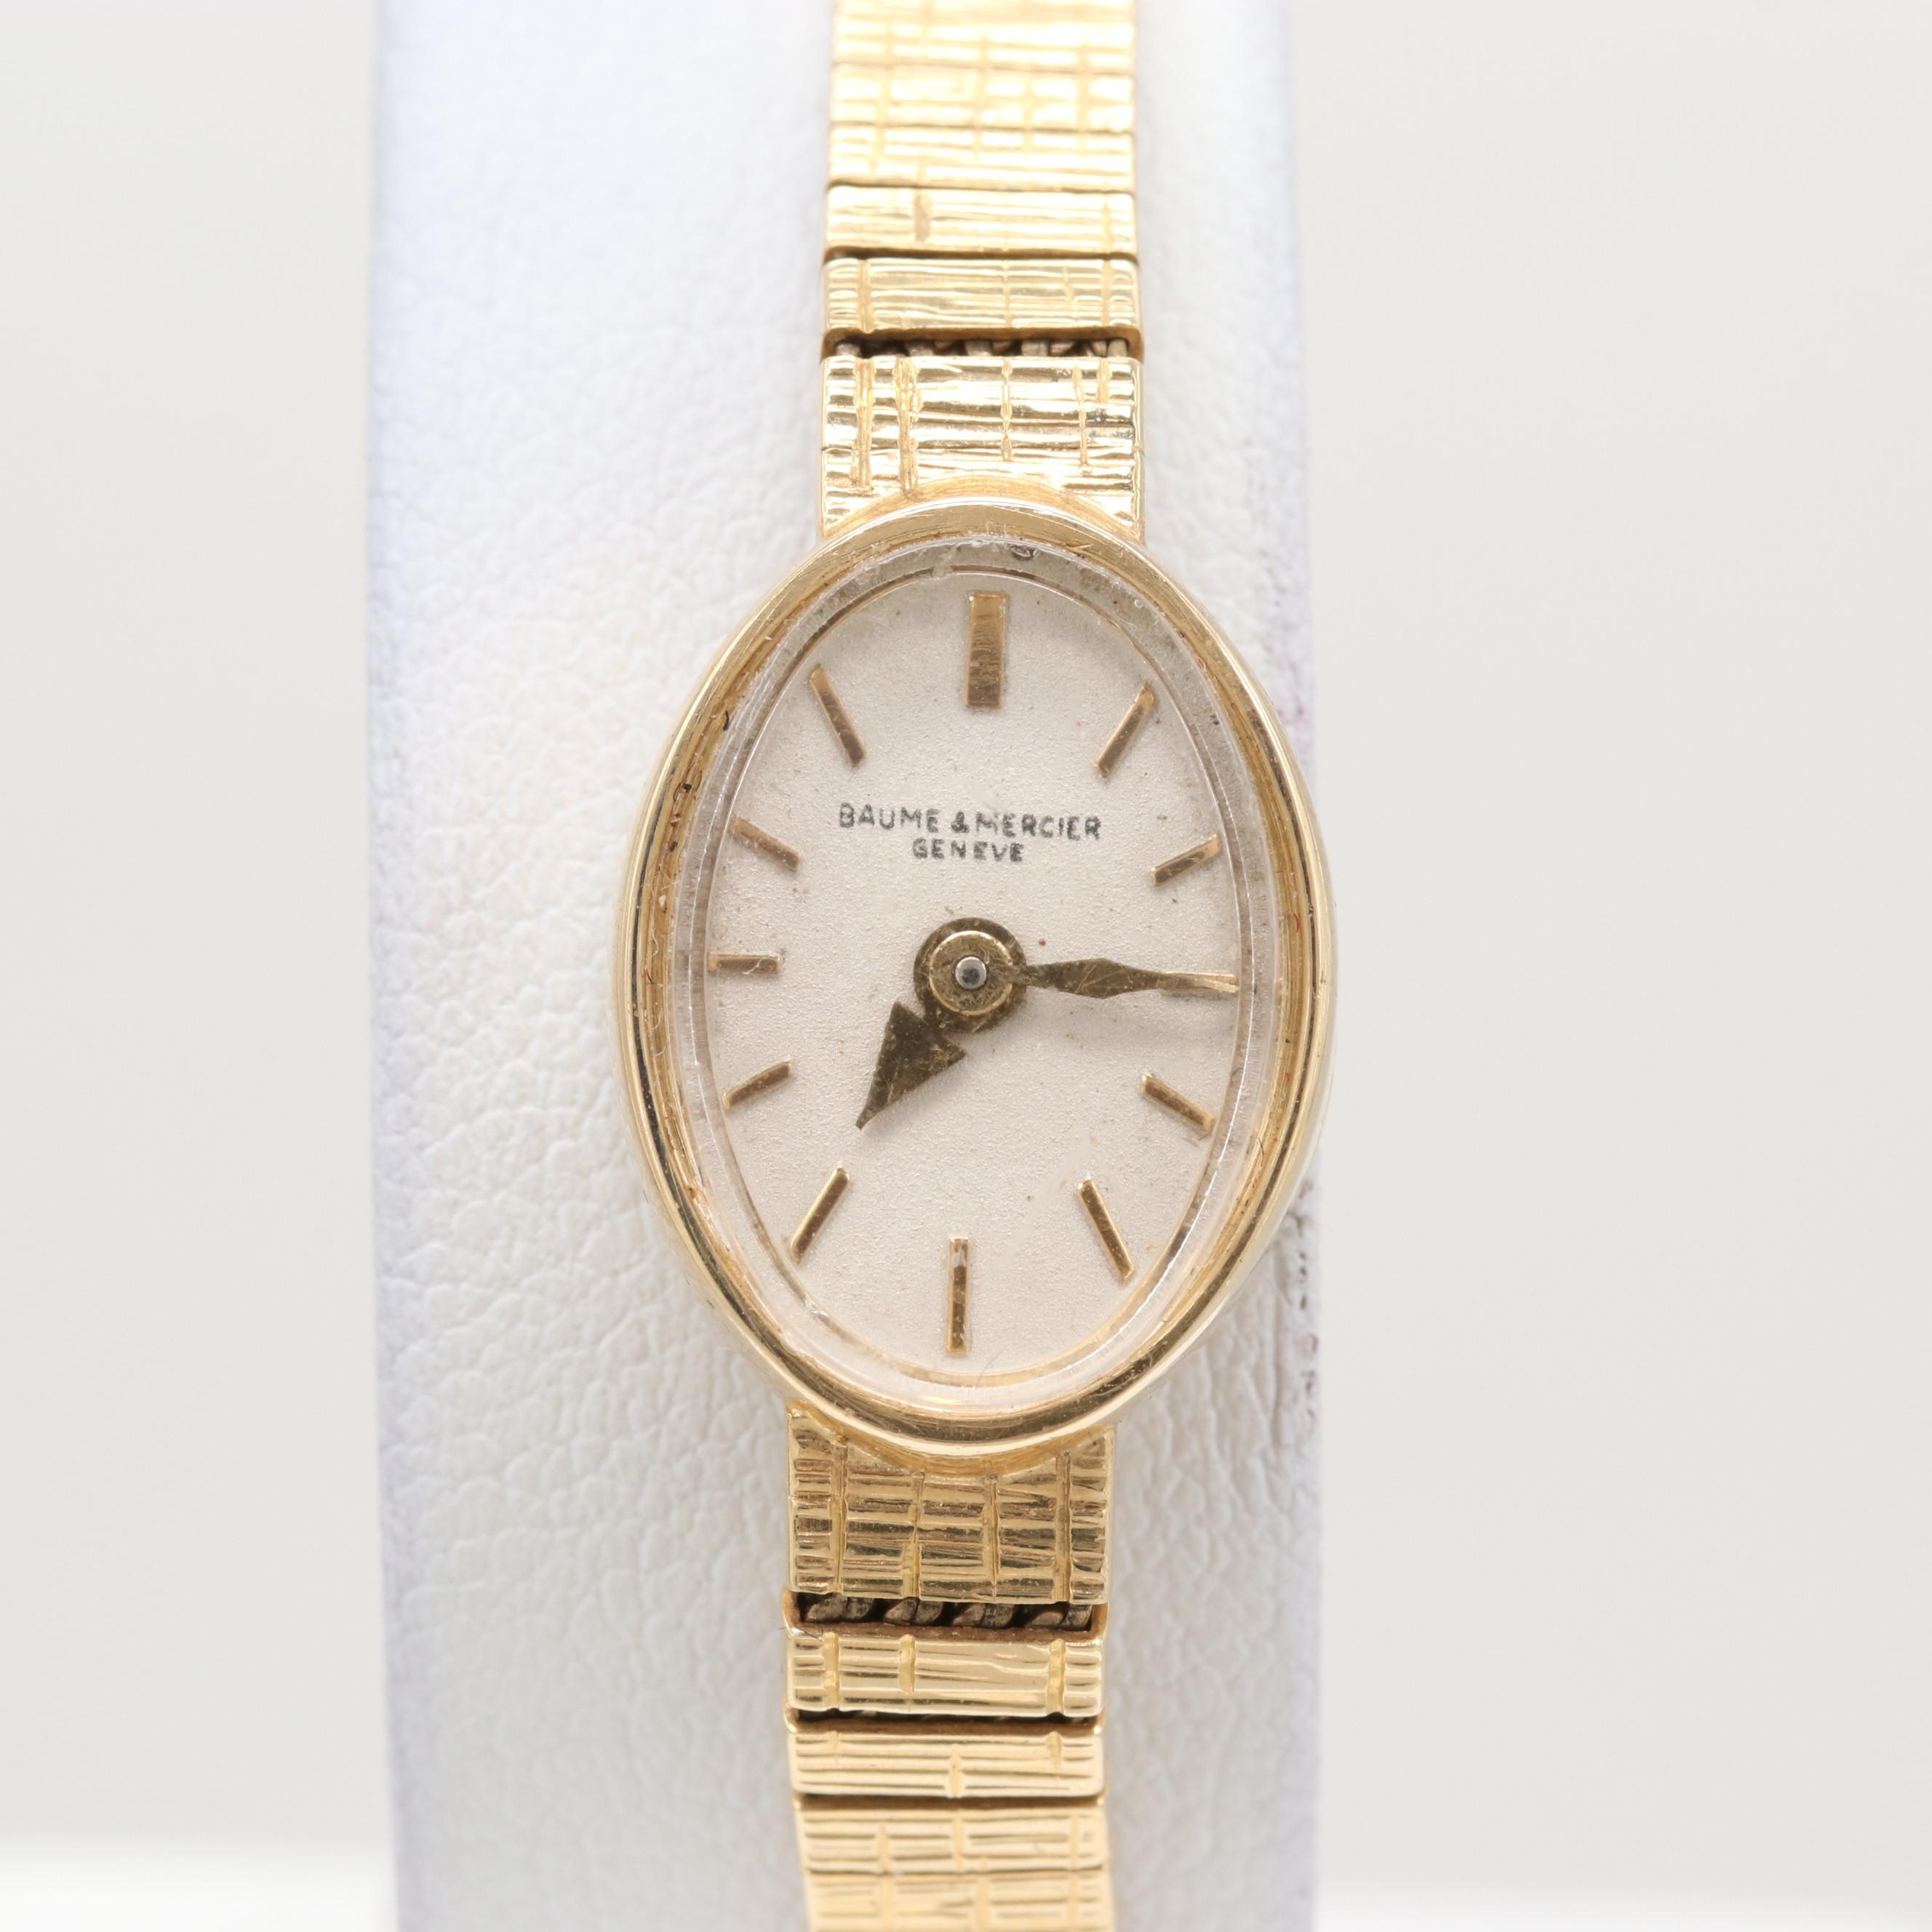 Vintage Baume & Mercier 14K Yellow Gold Wristwatch